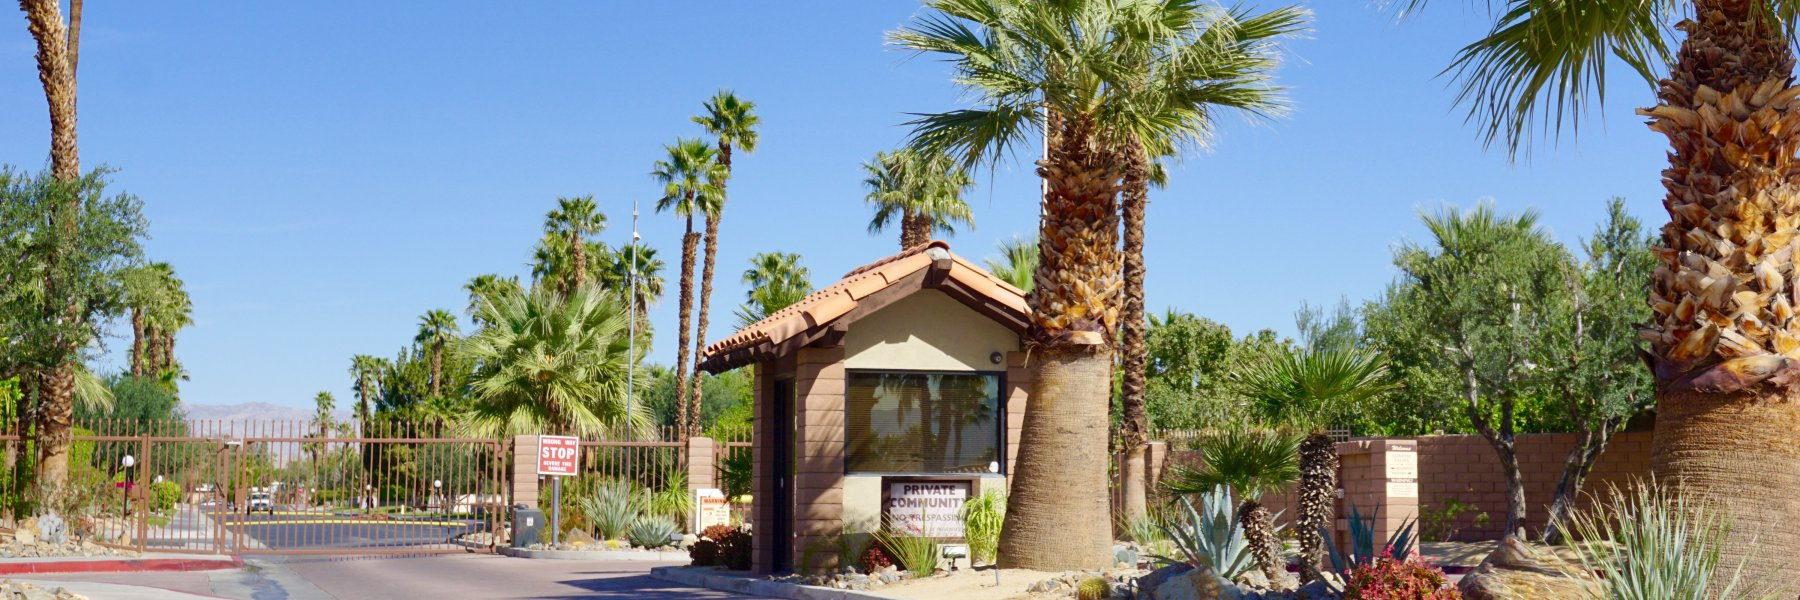 Sunrise Palms is a community of homes in Palm Springs California